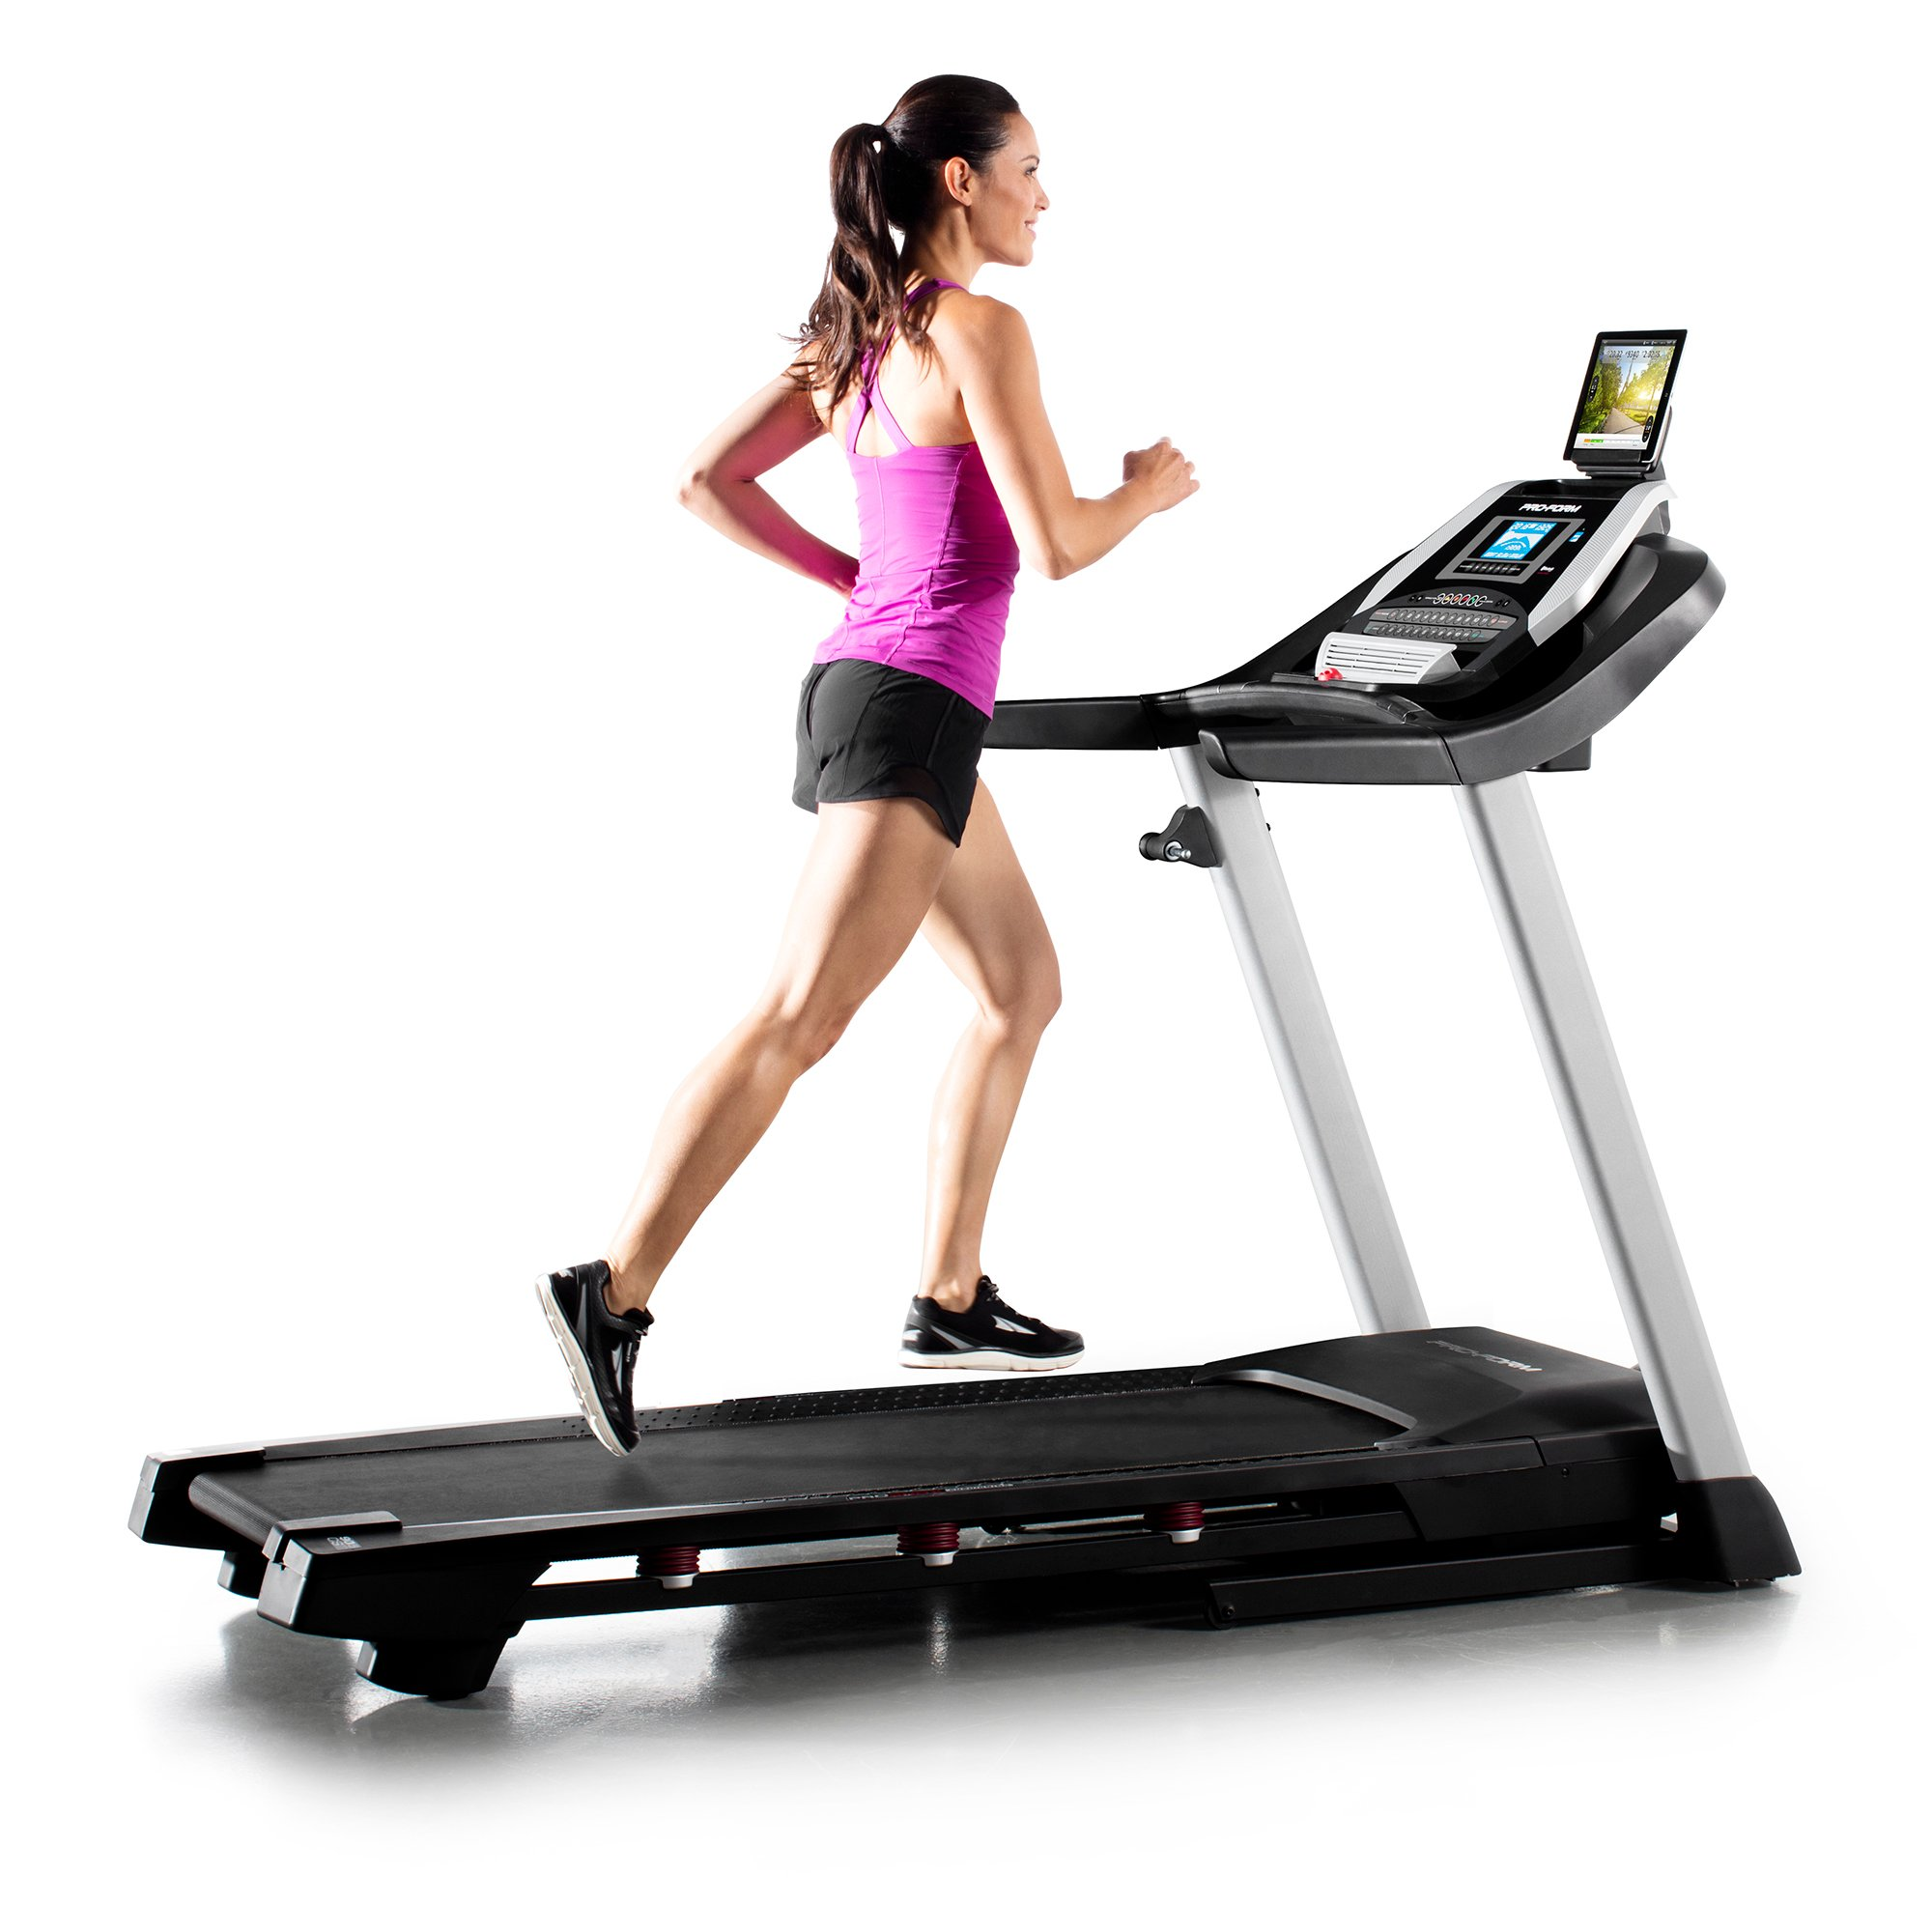 monitor grips trainer and pulse w side mats elliptical efitment mat rate magnetic lcd copy product